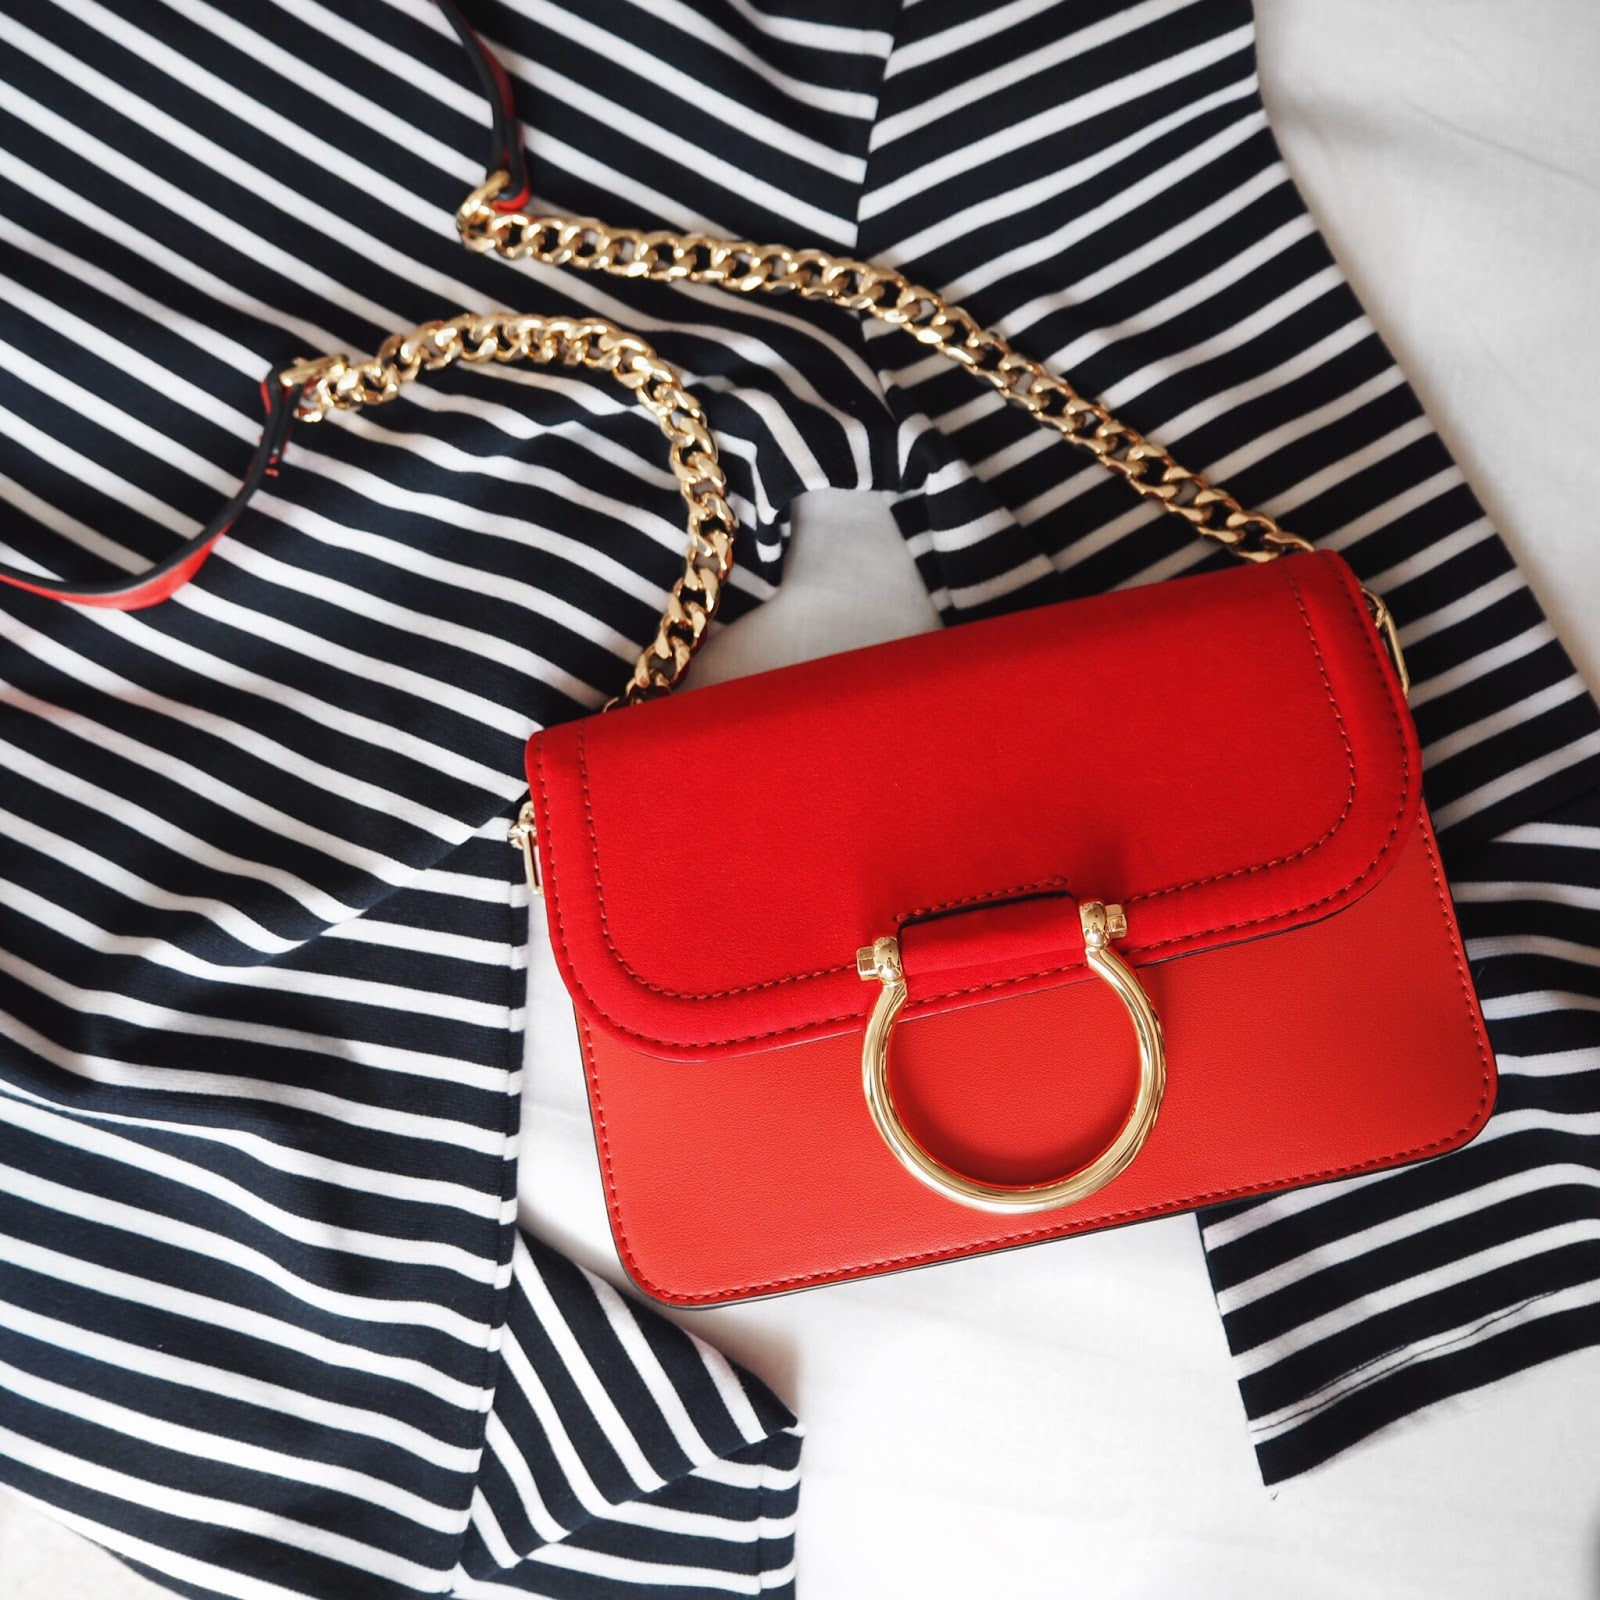 Red Topshop Crossbody Bag - Life in Excess Blog